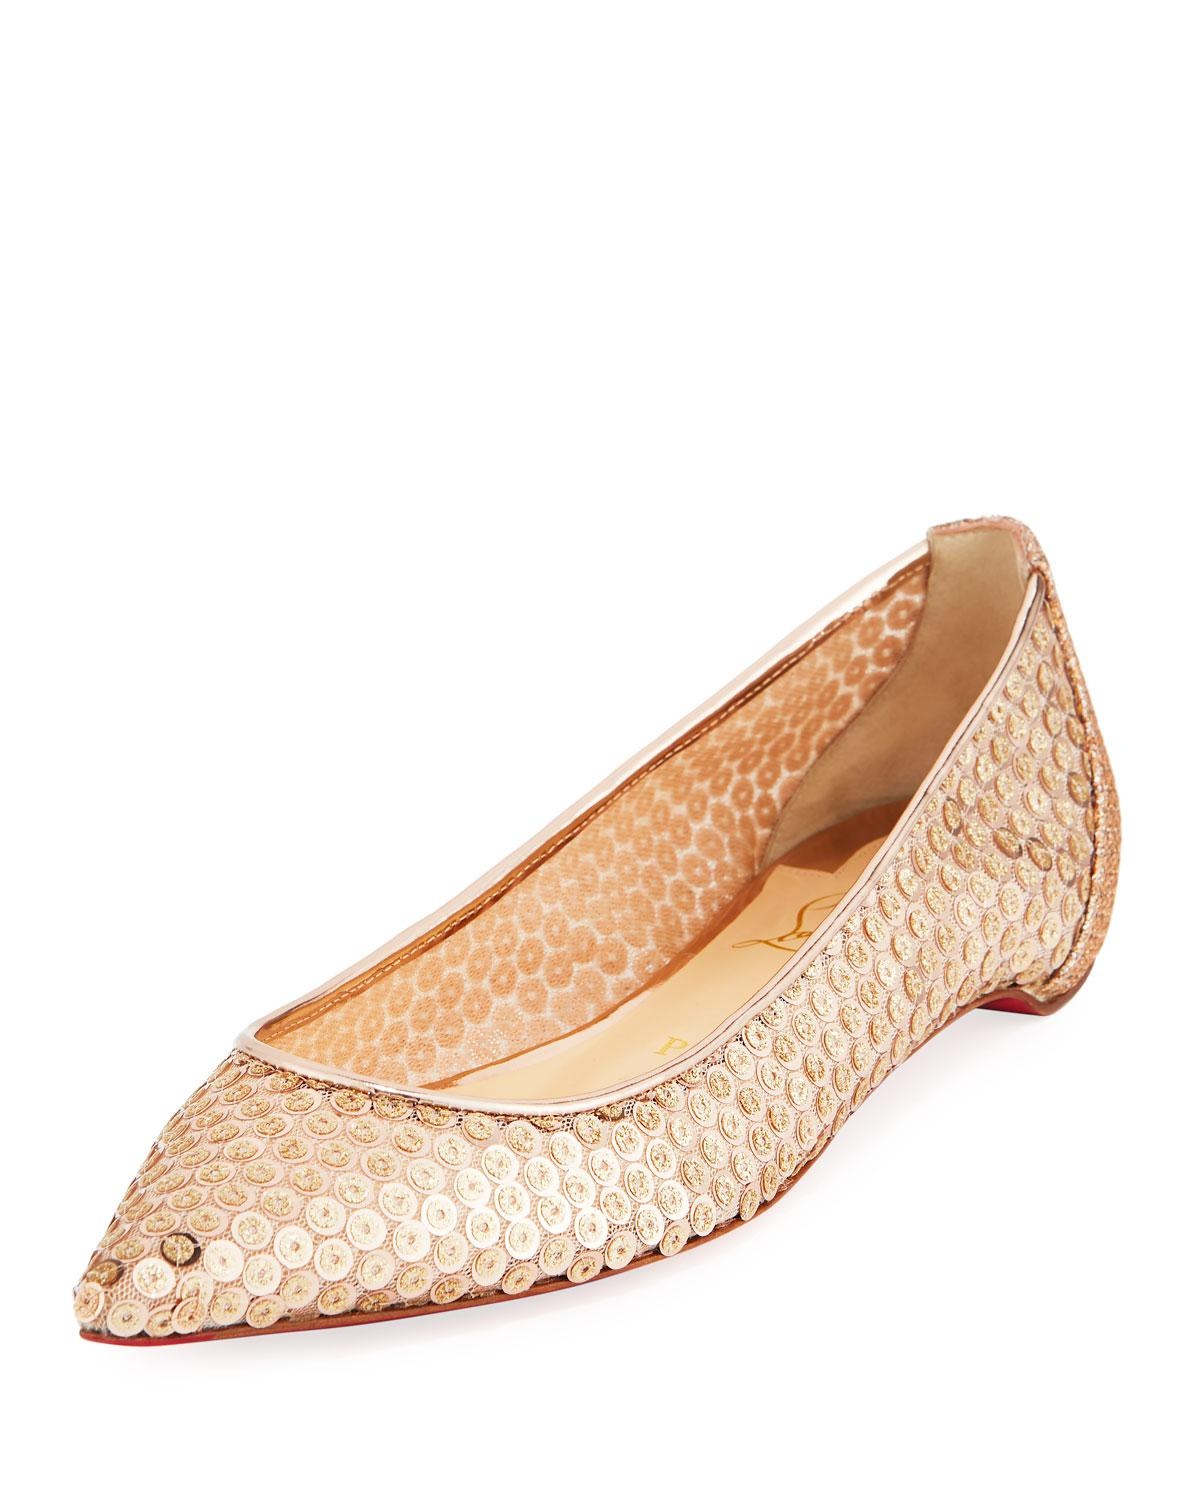 77c26dbfd3 Lyst - Christian Louboutin Lace Sequined Red Sole Ballet Flats in ...